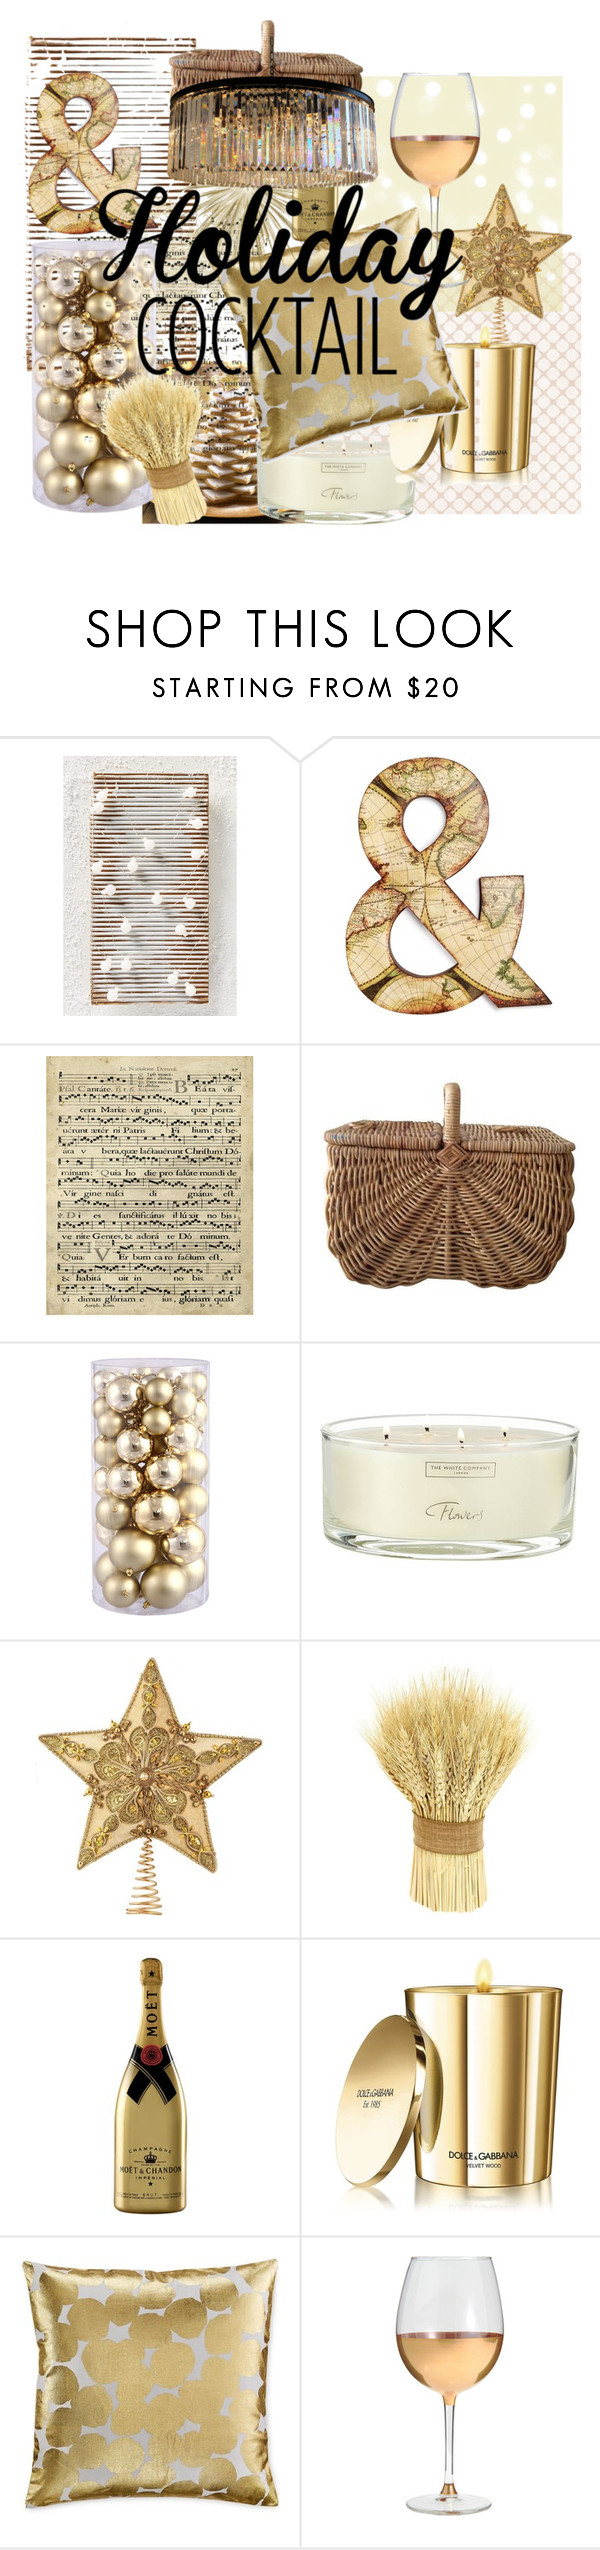 """""""Good as Gold"""" by mrb1234mrb ❤ liked on Polyvore featuring interior, interiors, interior design, home, home decor, interior decorating, Graham & Brown, Art Classics, Smith & Hawken and Dolce&Gabbana"""